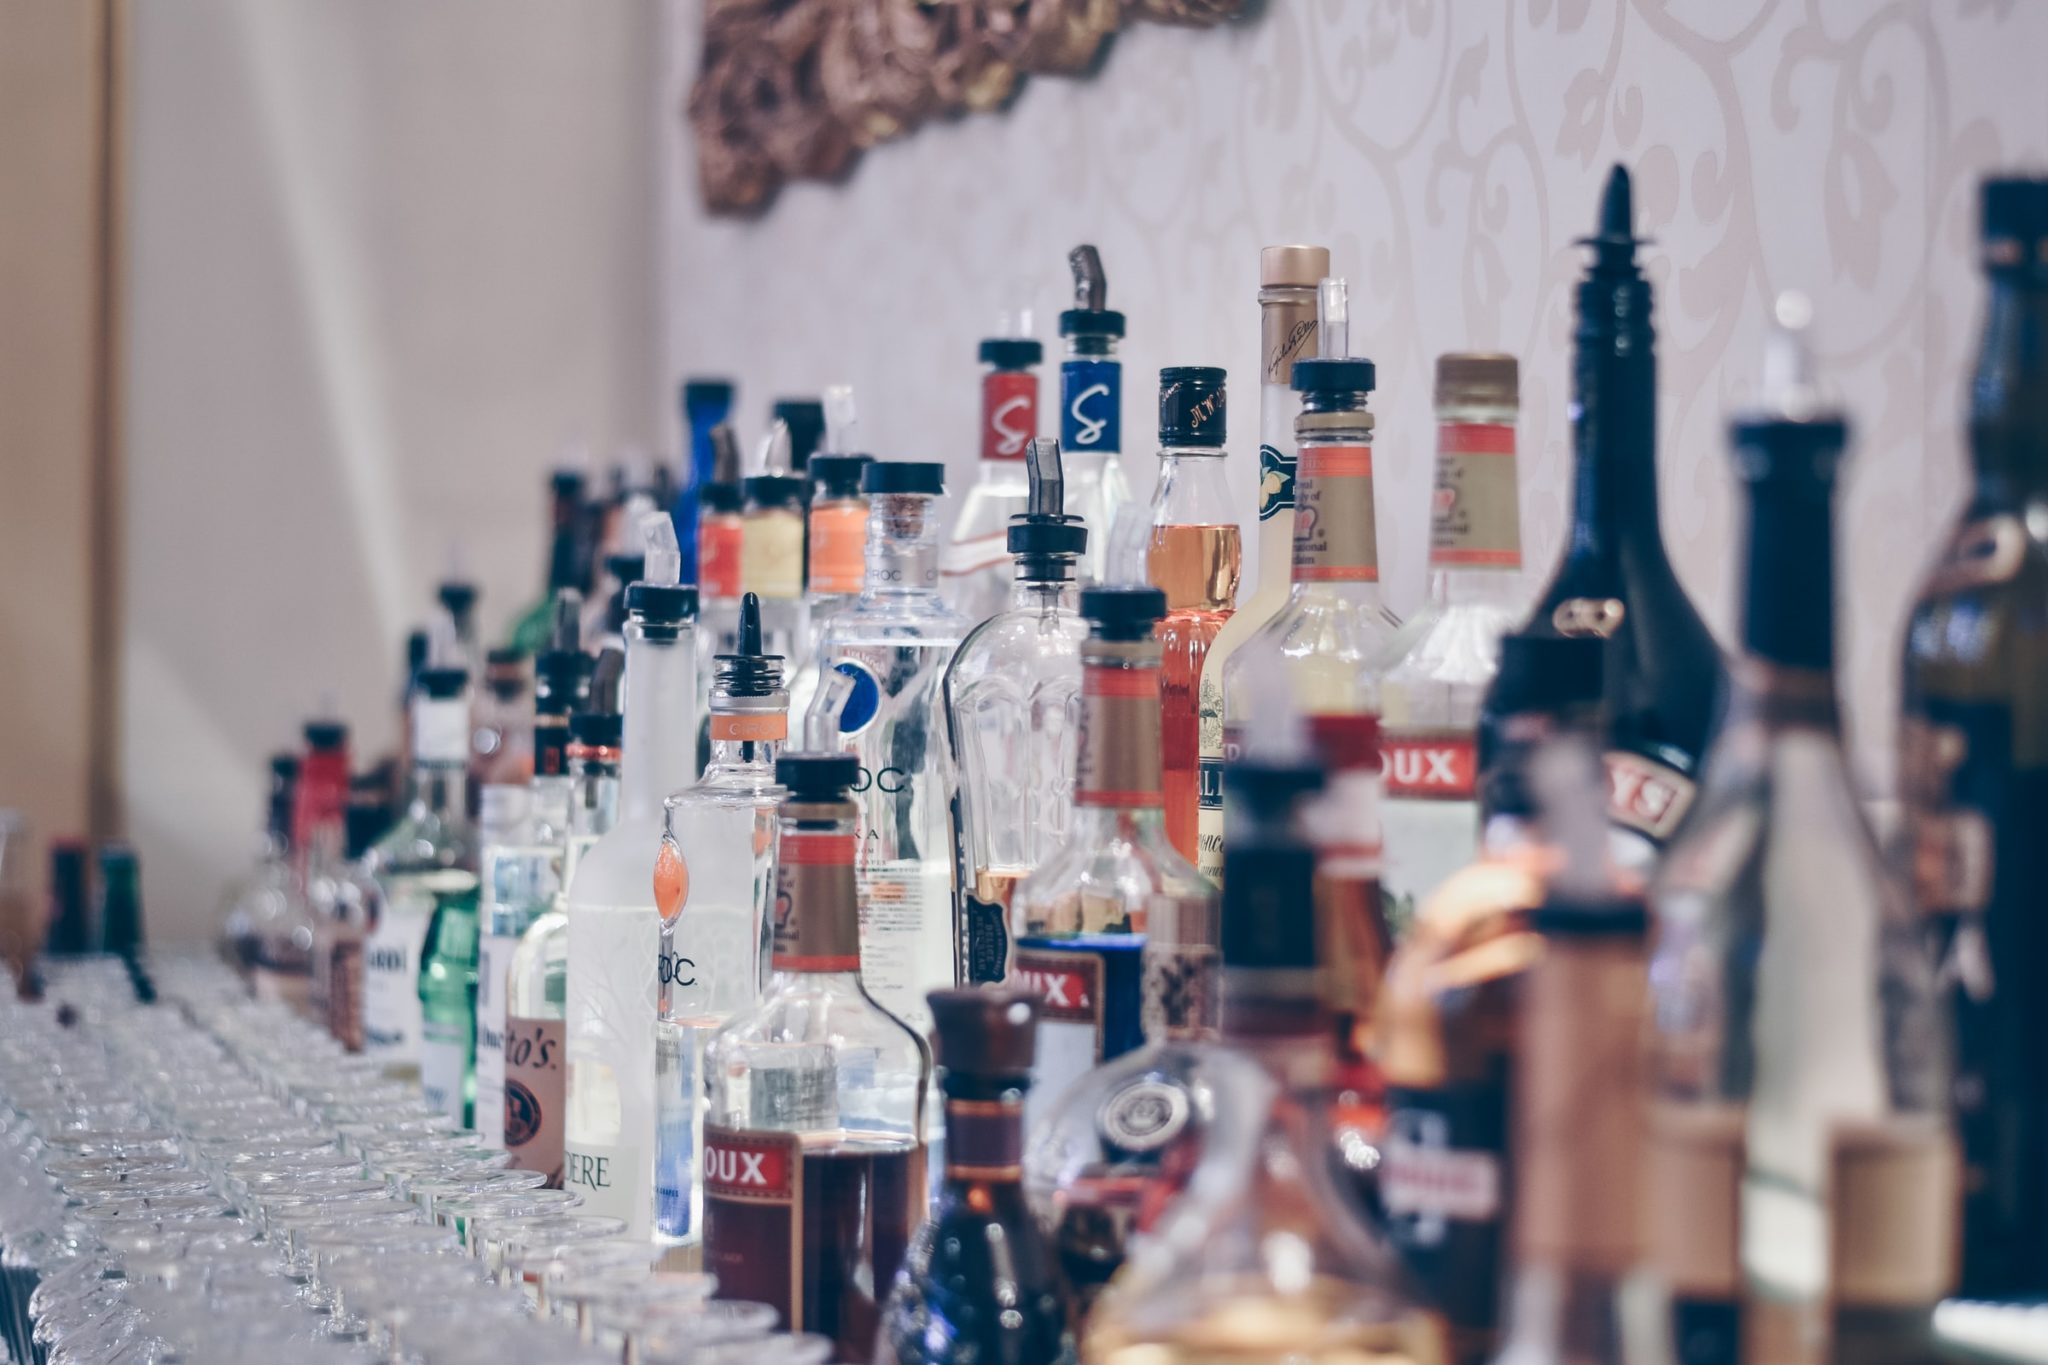 Bottles of alcohol stacked in rows on the back of a bar by a wall. Image by ibrahim-boran on Unsplash.